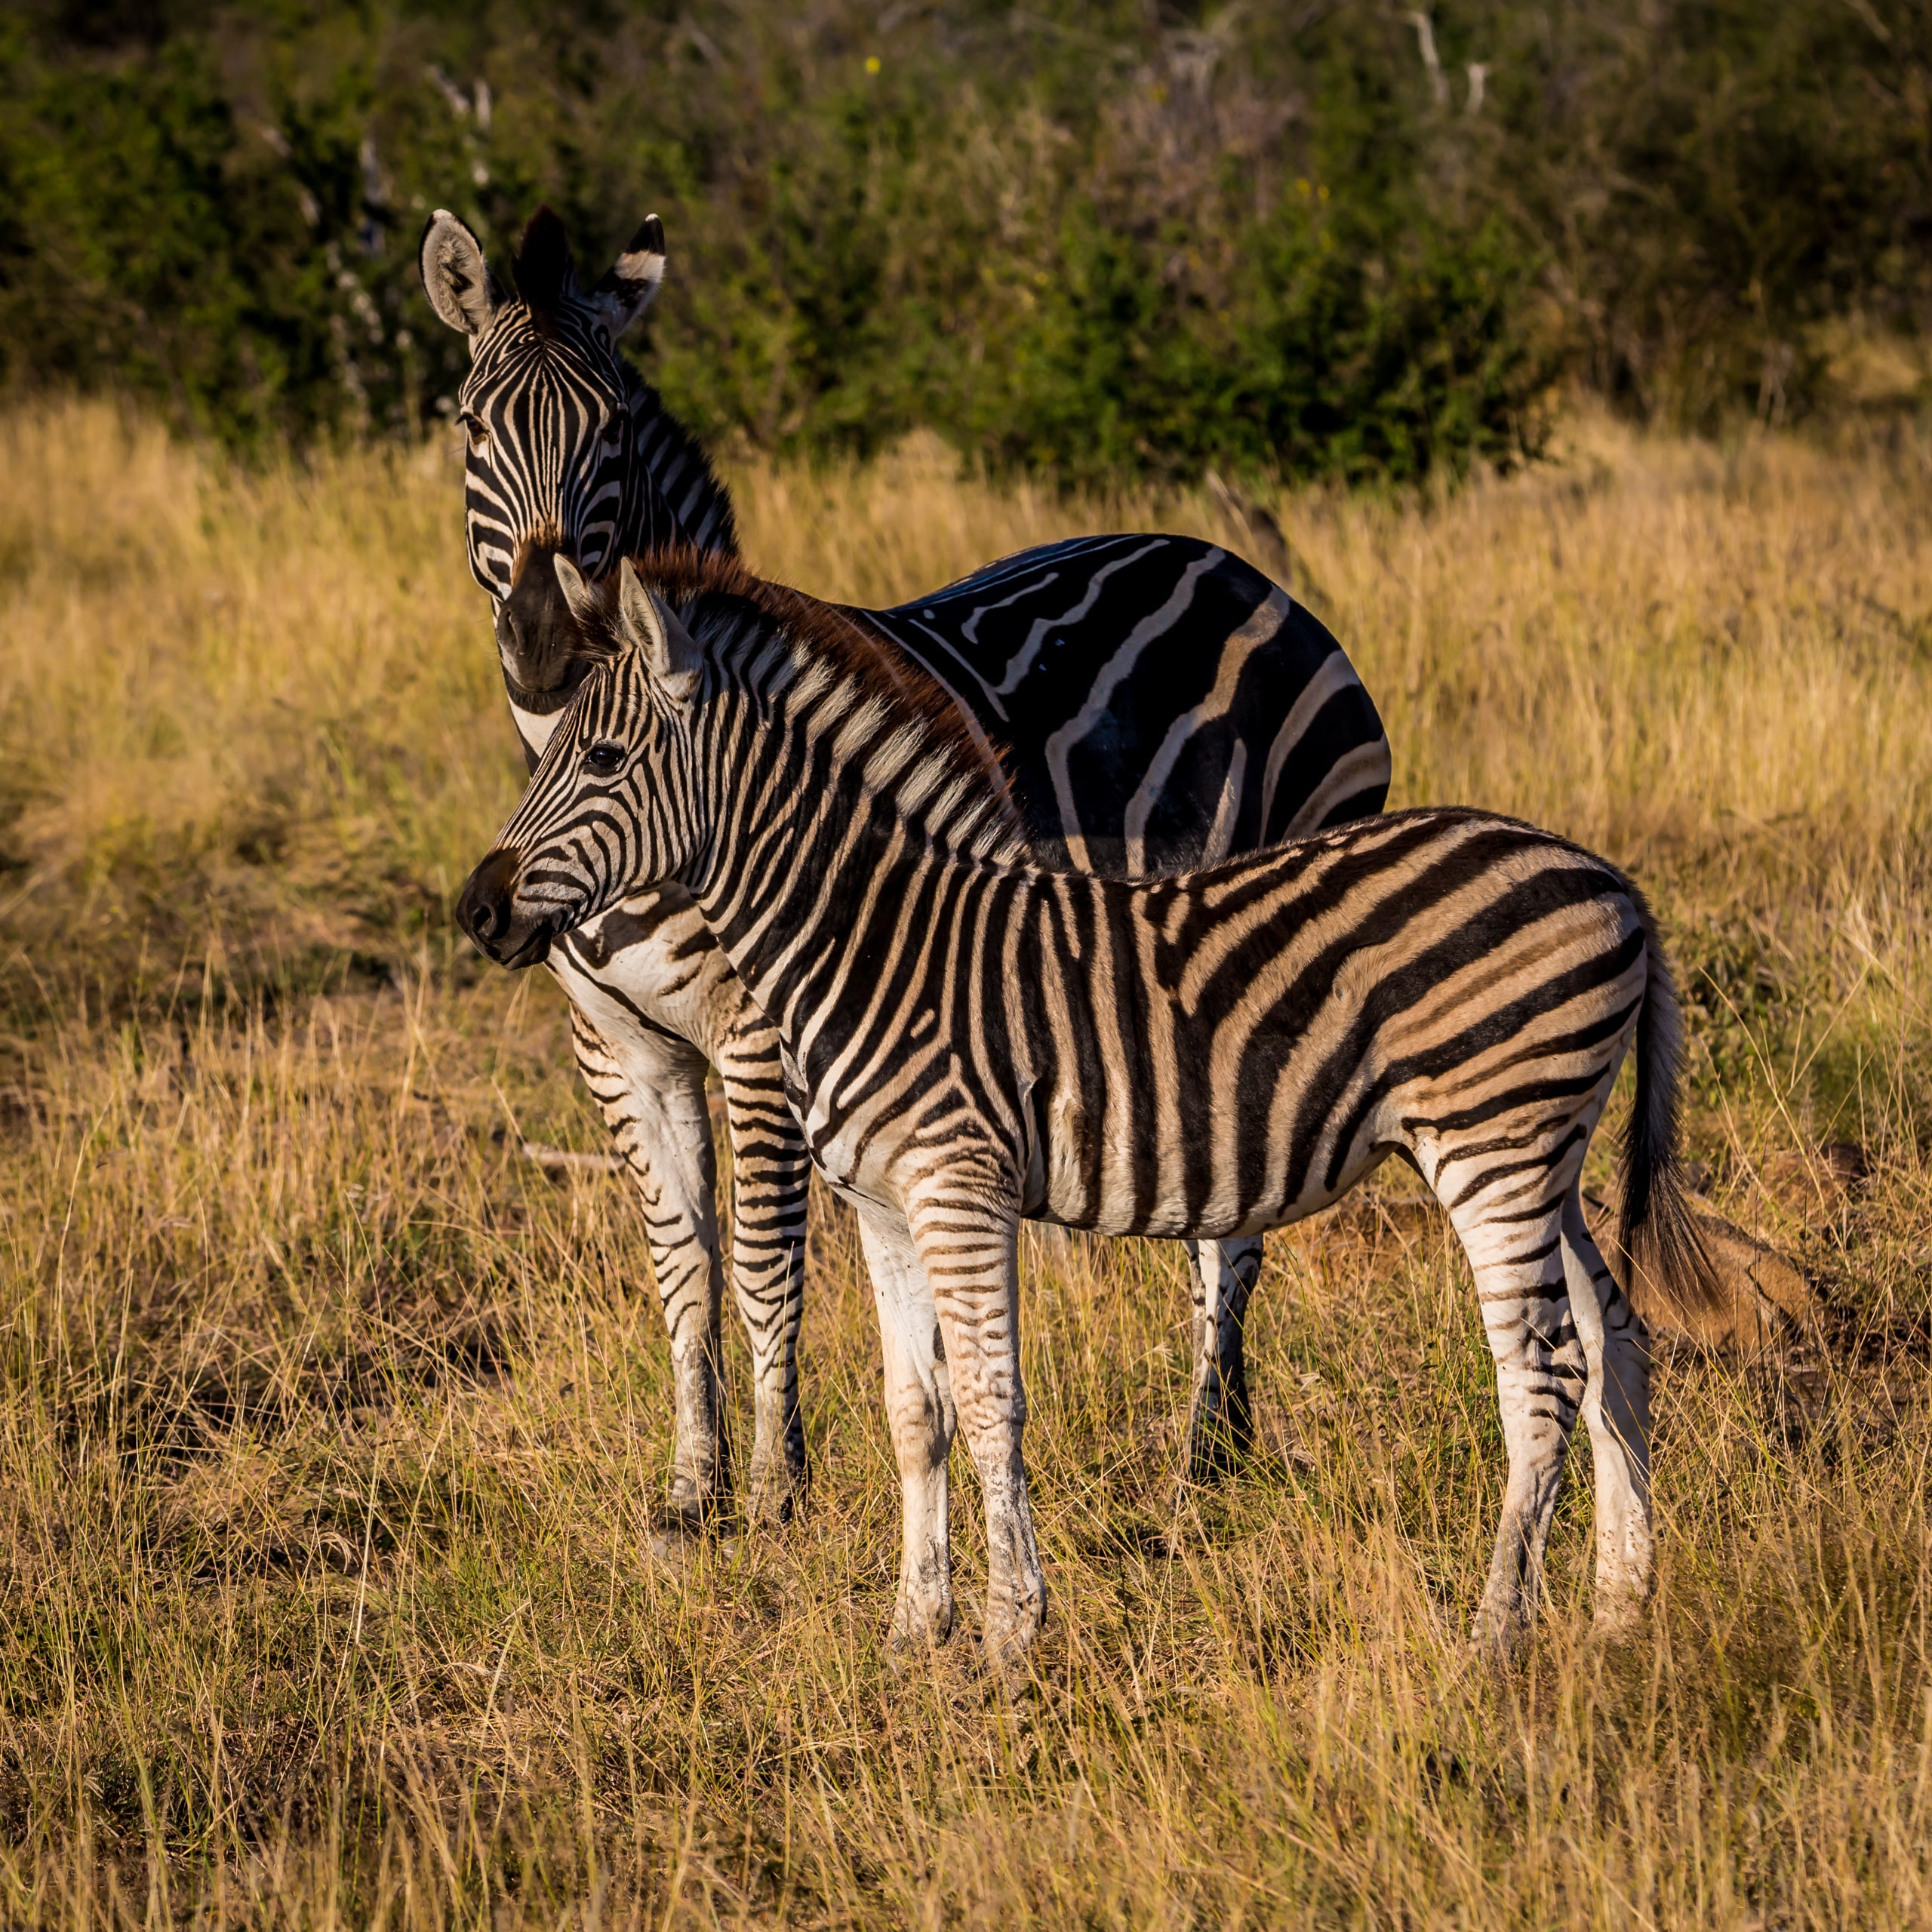 Two zebras in a dry grass field